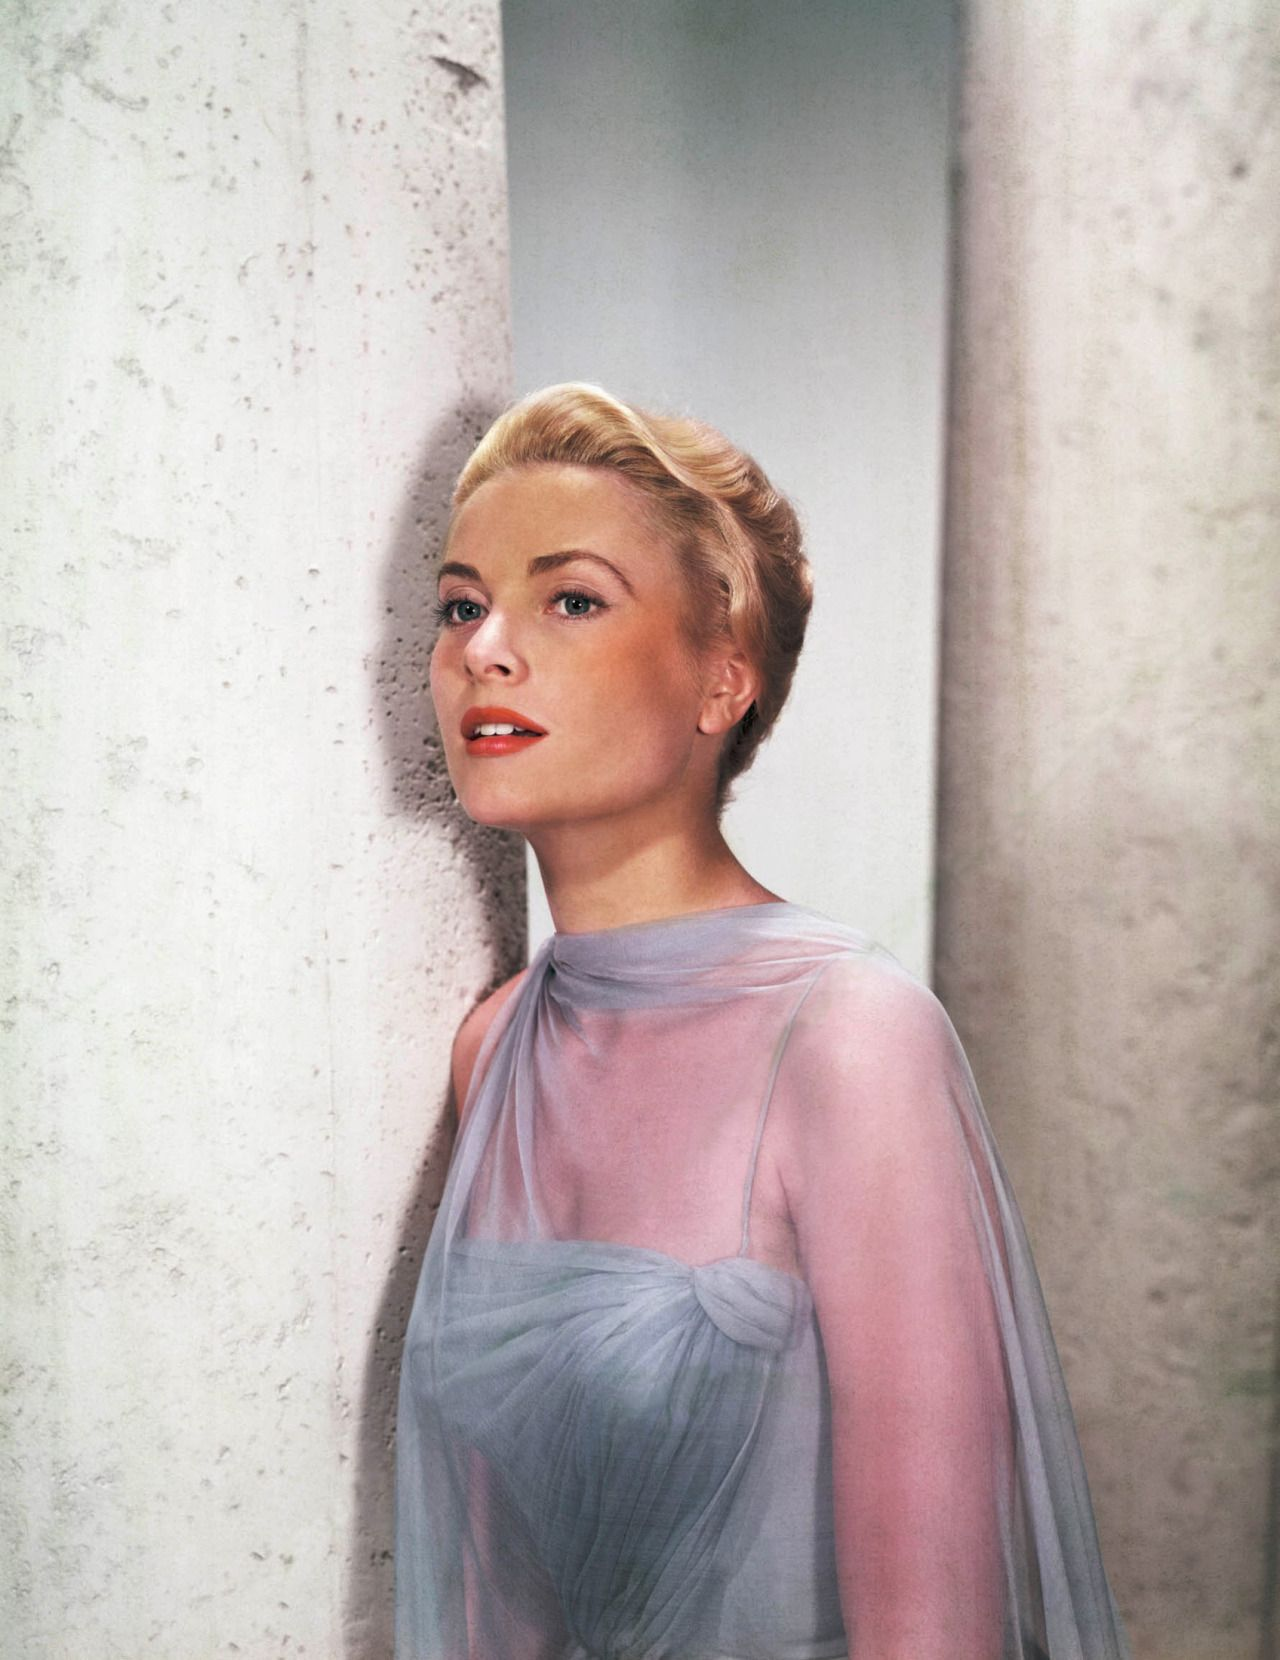 Grace Kelly in To Catch a Thief c.1955